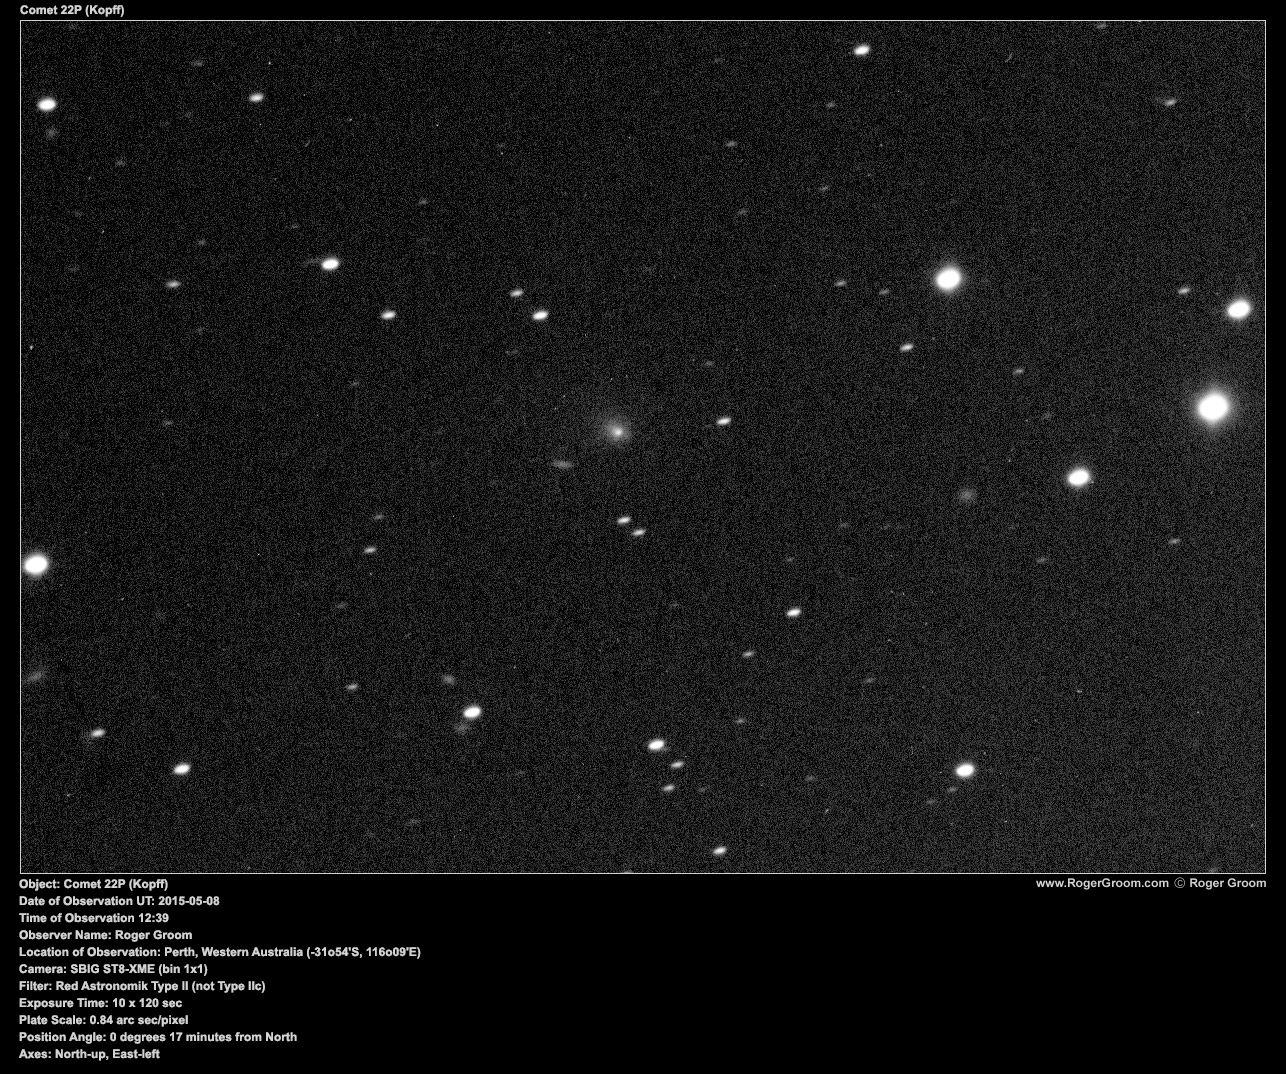 Object: Comet 22P (Kopff) Date of Observation UT: 2015-05-08 Time of Observation 12:39 Observer Name: Roger Groom Location of Observation: Perth, Western Australia (-31o54'S, 116o09'E) Camera: SBIG ST8-XME (bin 1x1) Filter: Red Astronomik Type II (not Type IIc) Exposure Time: 10 x 120 sec Plate Scale: 0.84 arc sec/pixel Position Angle: 0 degrees 17 minutes from North Axes: North-up, East-left